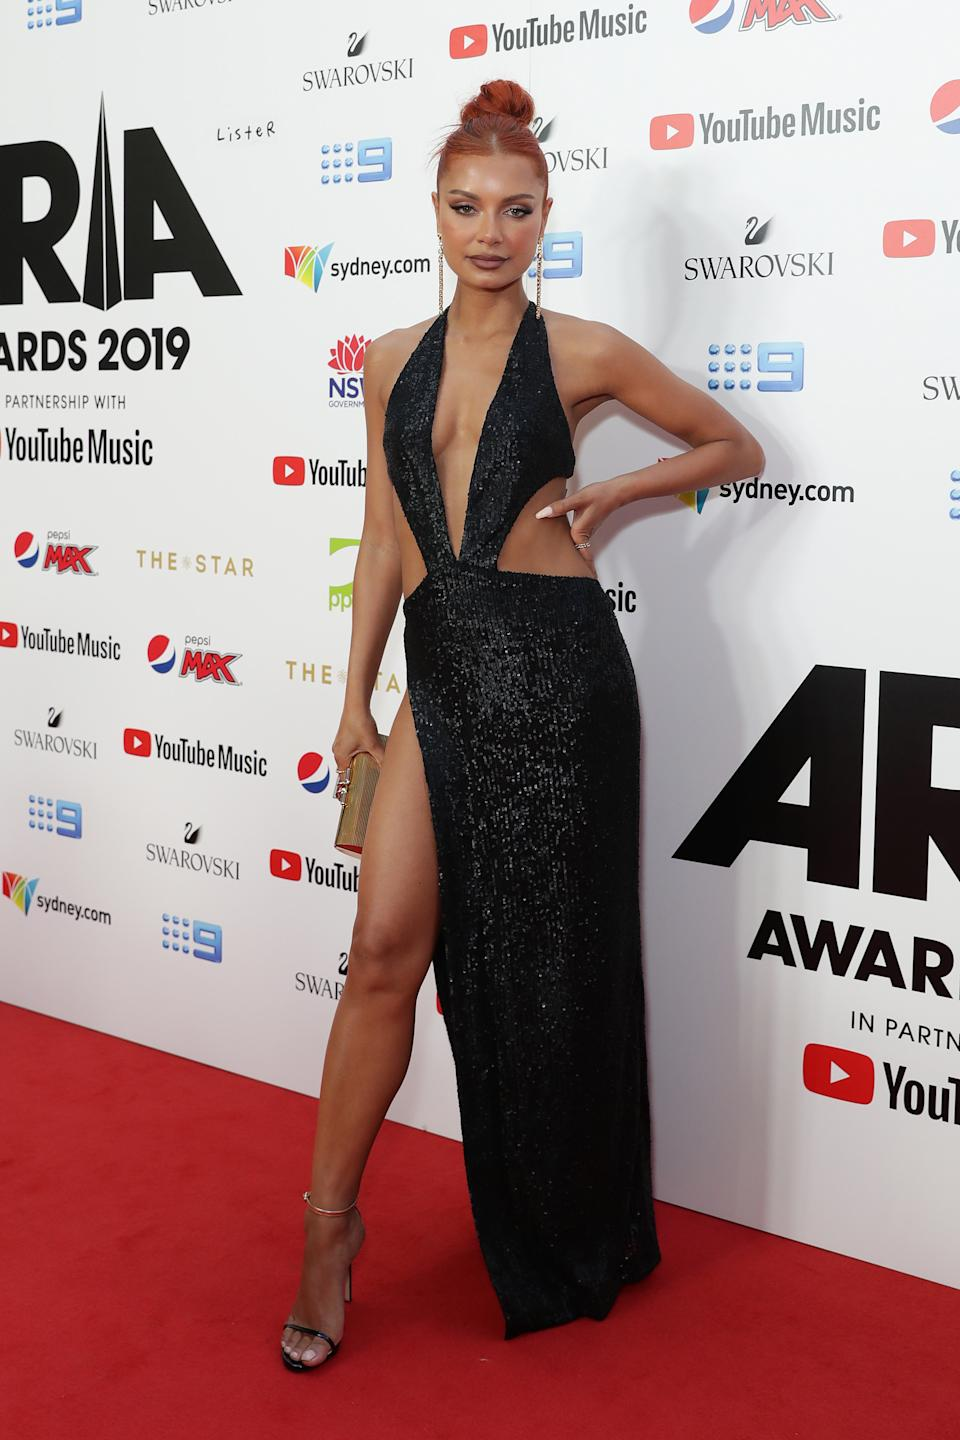 DJ Havana Brown worked a cut-out gown at the ARIA Awards 2019. Photo: Getty Images